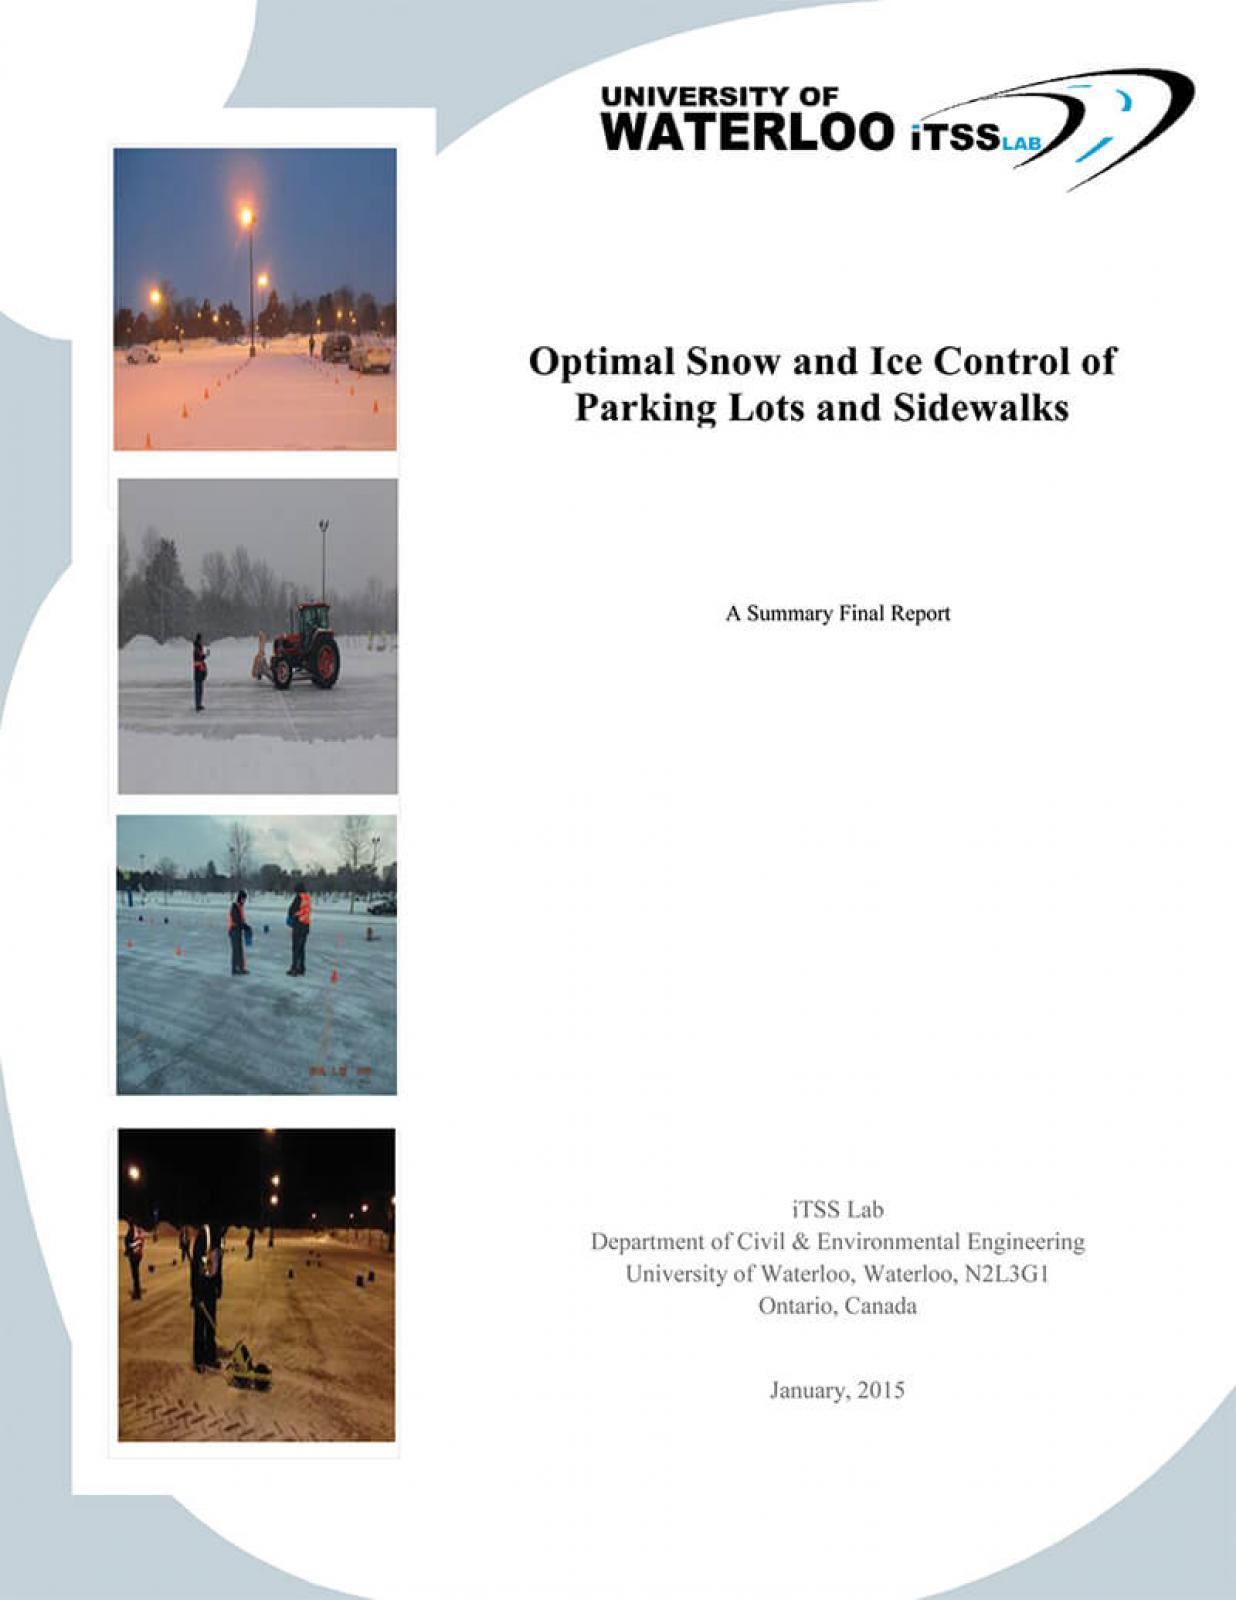 Snow and Ice Control for Parking Lots and Sidewalks summarizes three years of research.